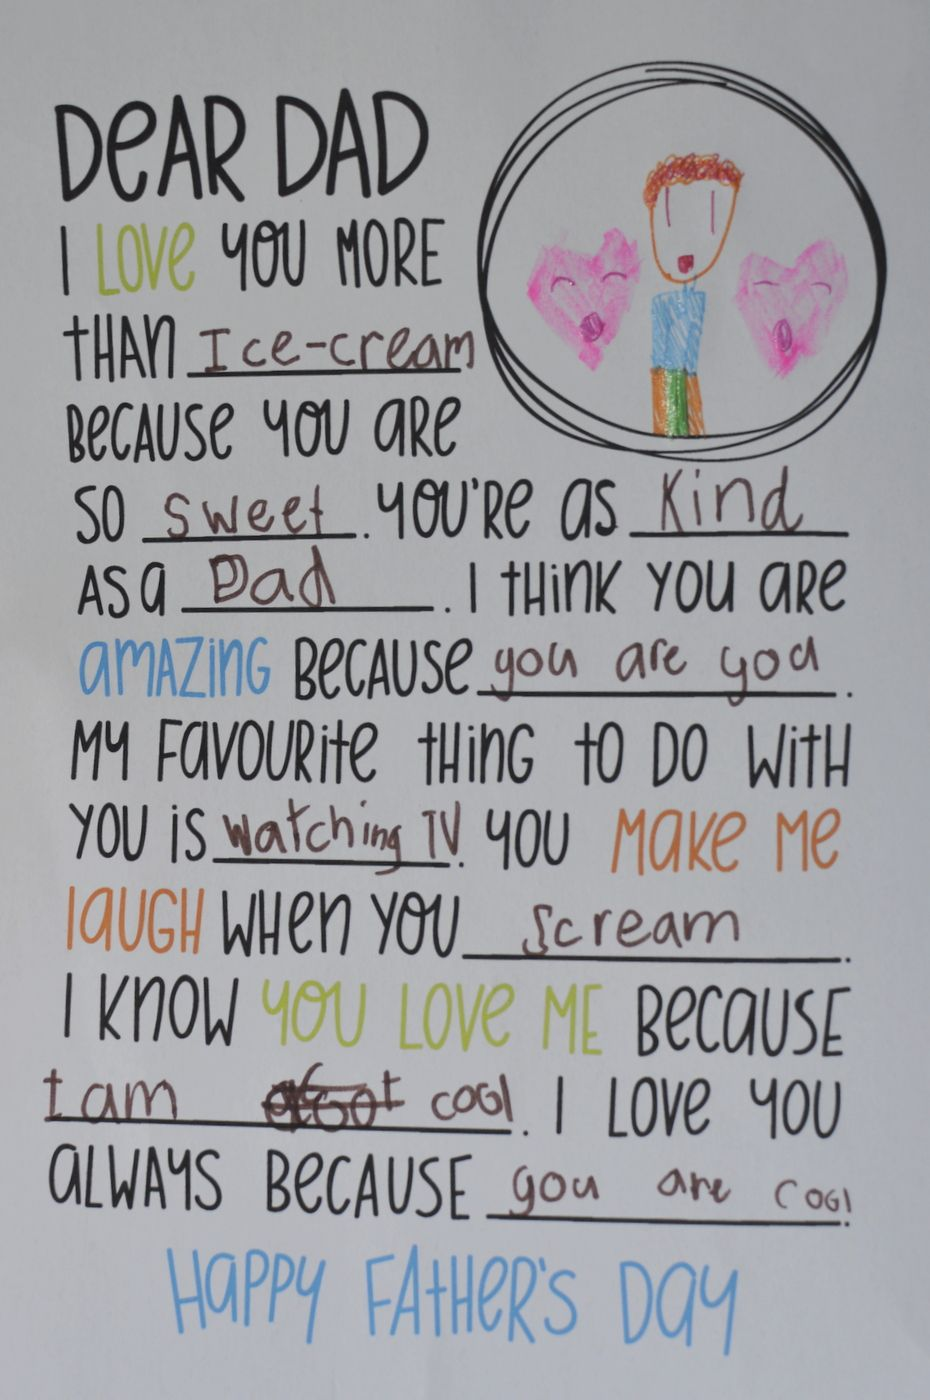 65499b7ef6a Dear Dad Letter - Fill in the Blanks - Great for Father s Day ...